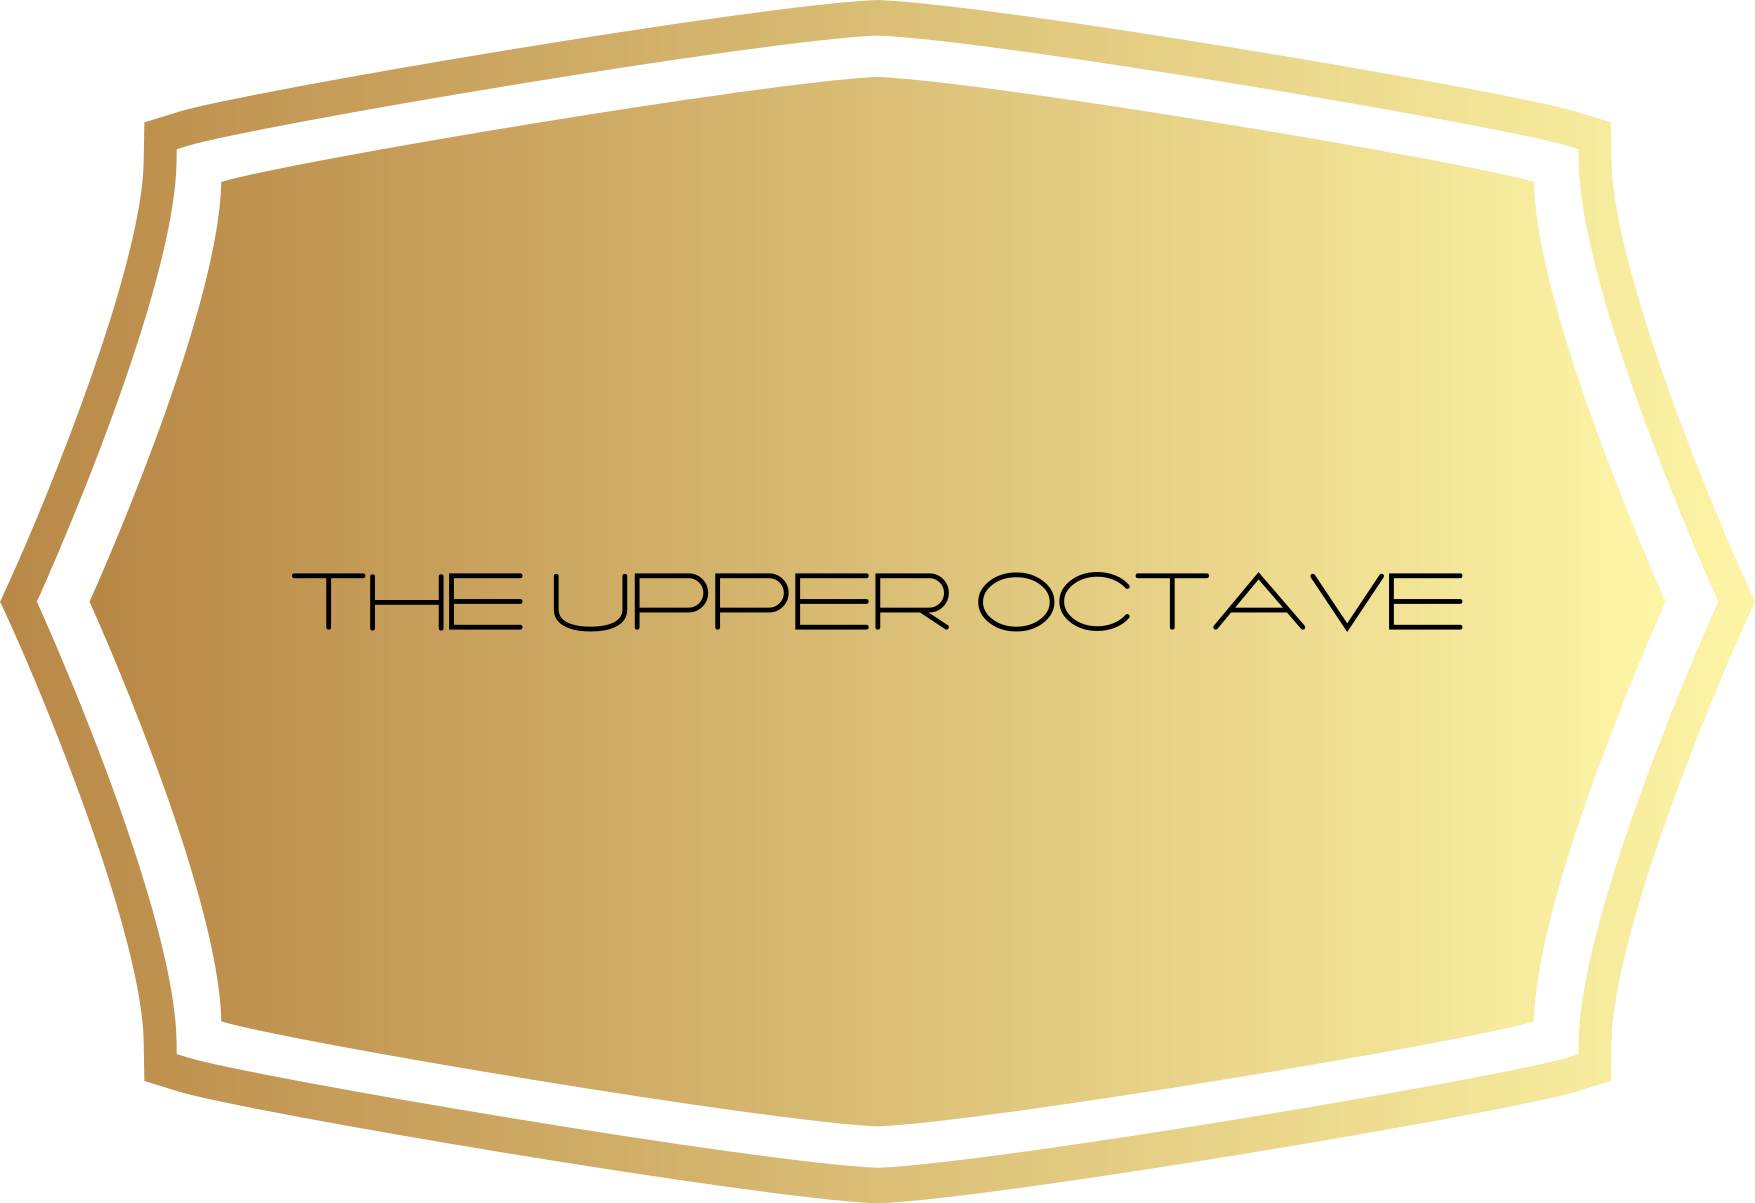 The Upper Octave